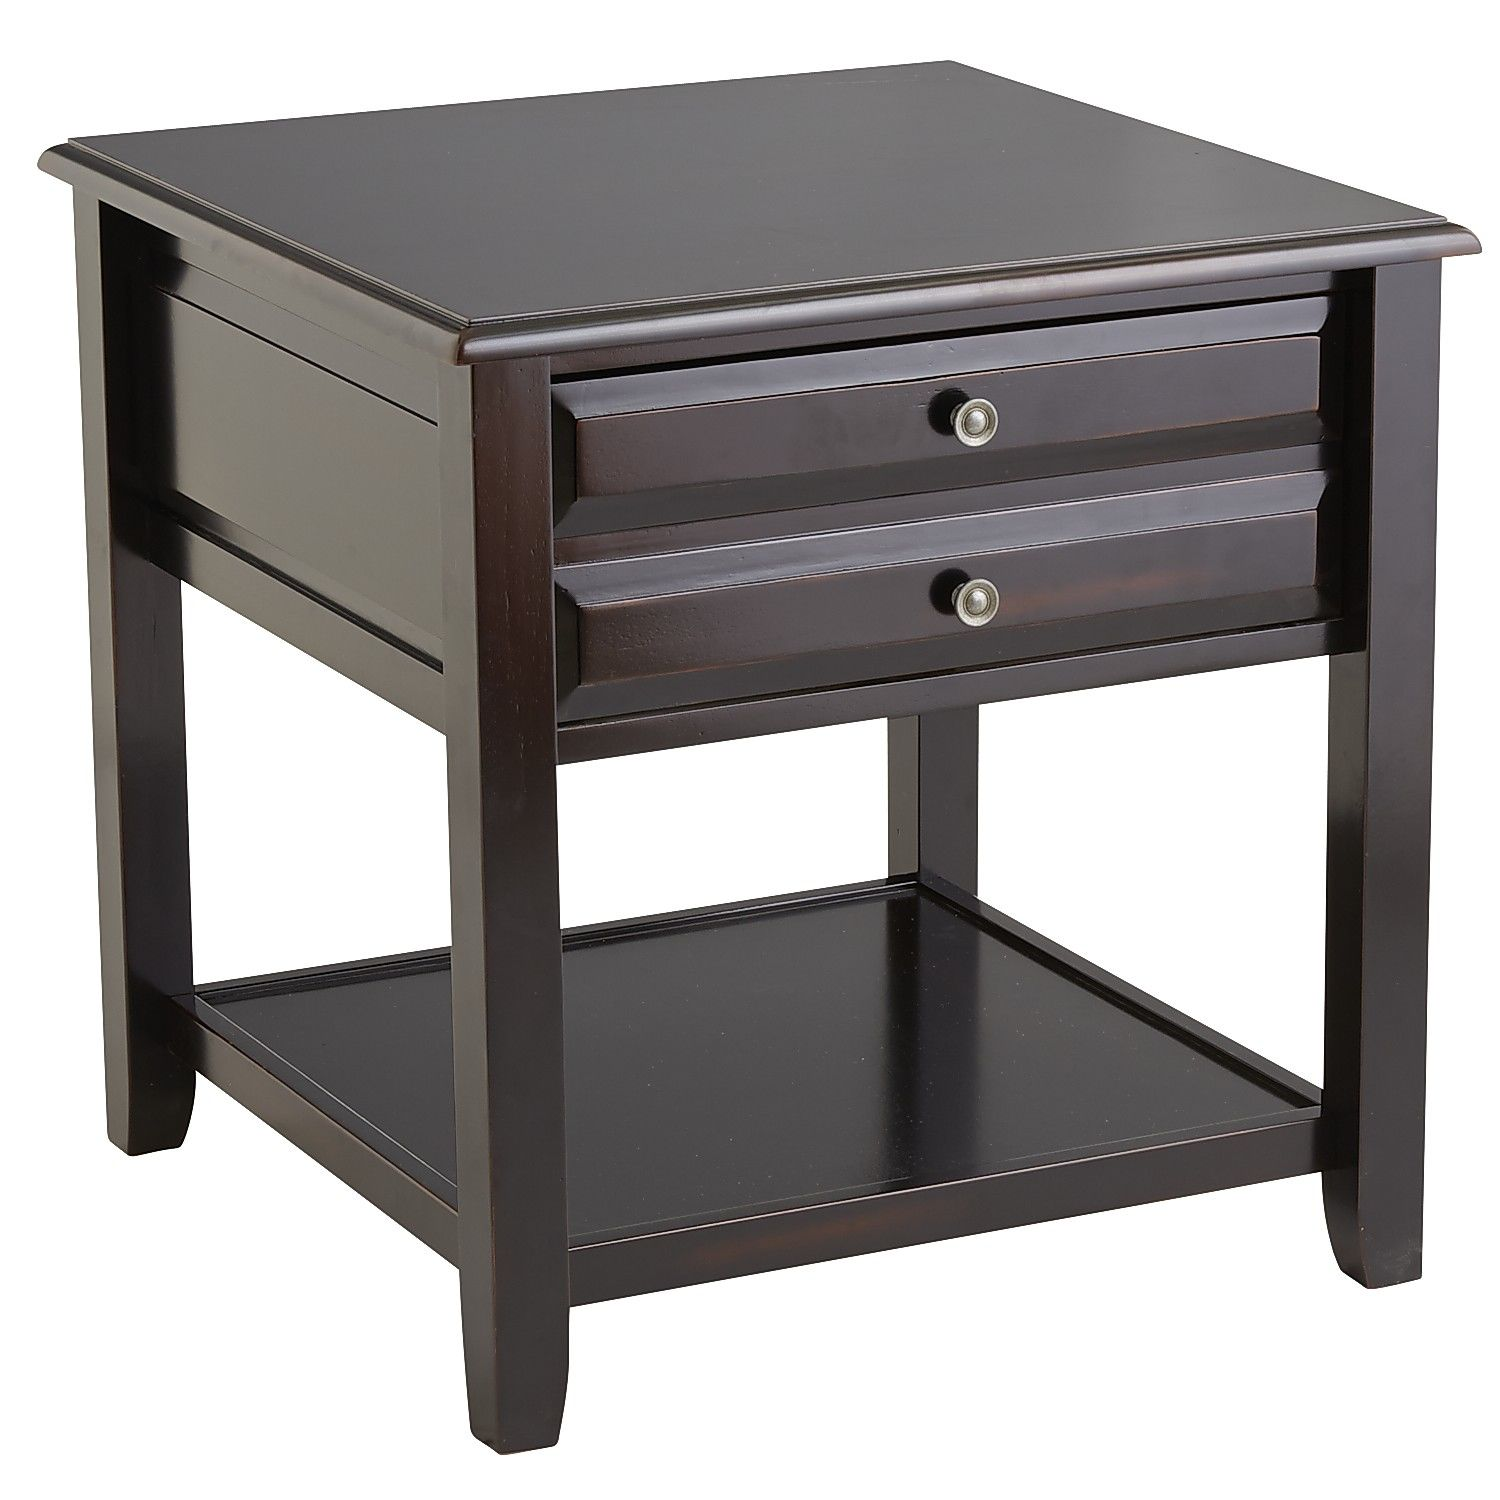 anywhere large rubbed black end table with knobs pier narrow accent tables wooden bar bunnings chairs and modern kitchen clocks small brass coffee home ornaments threshold teal